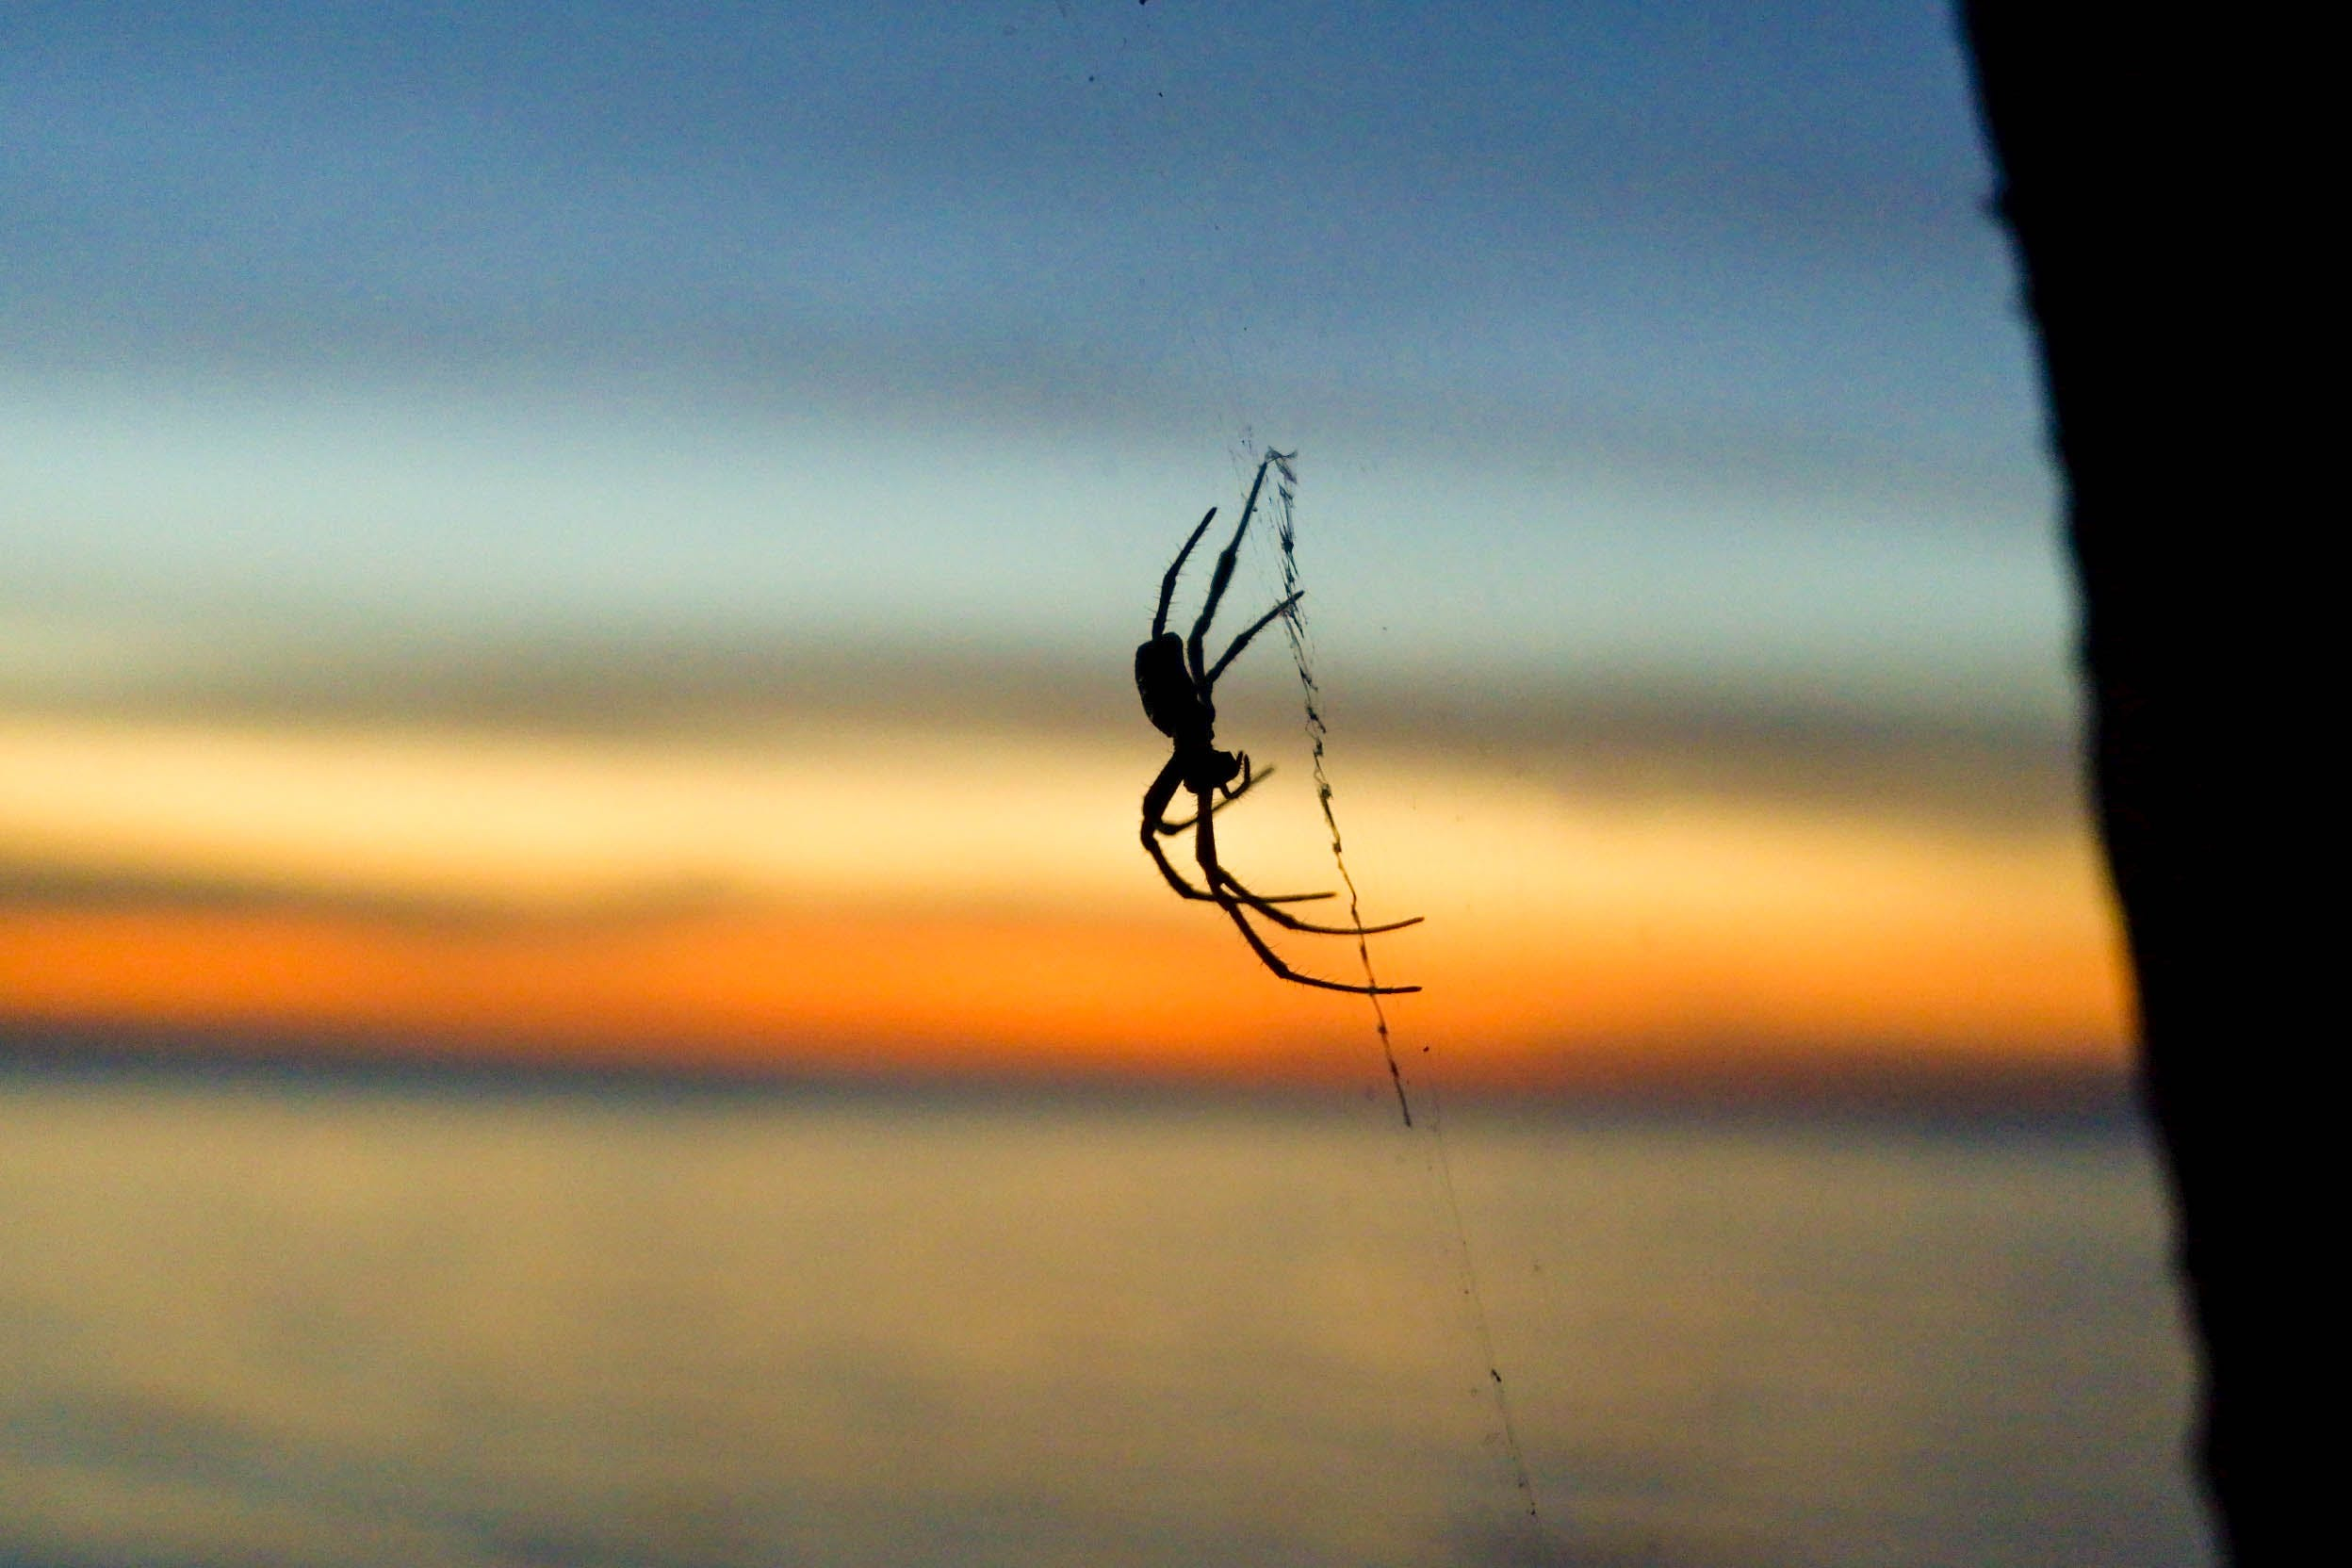 Free stock photo of shadow, spider, spider web, sunset beach